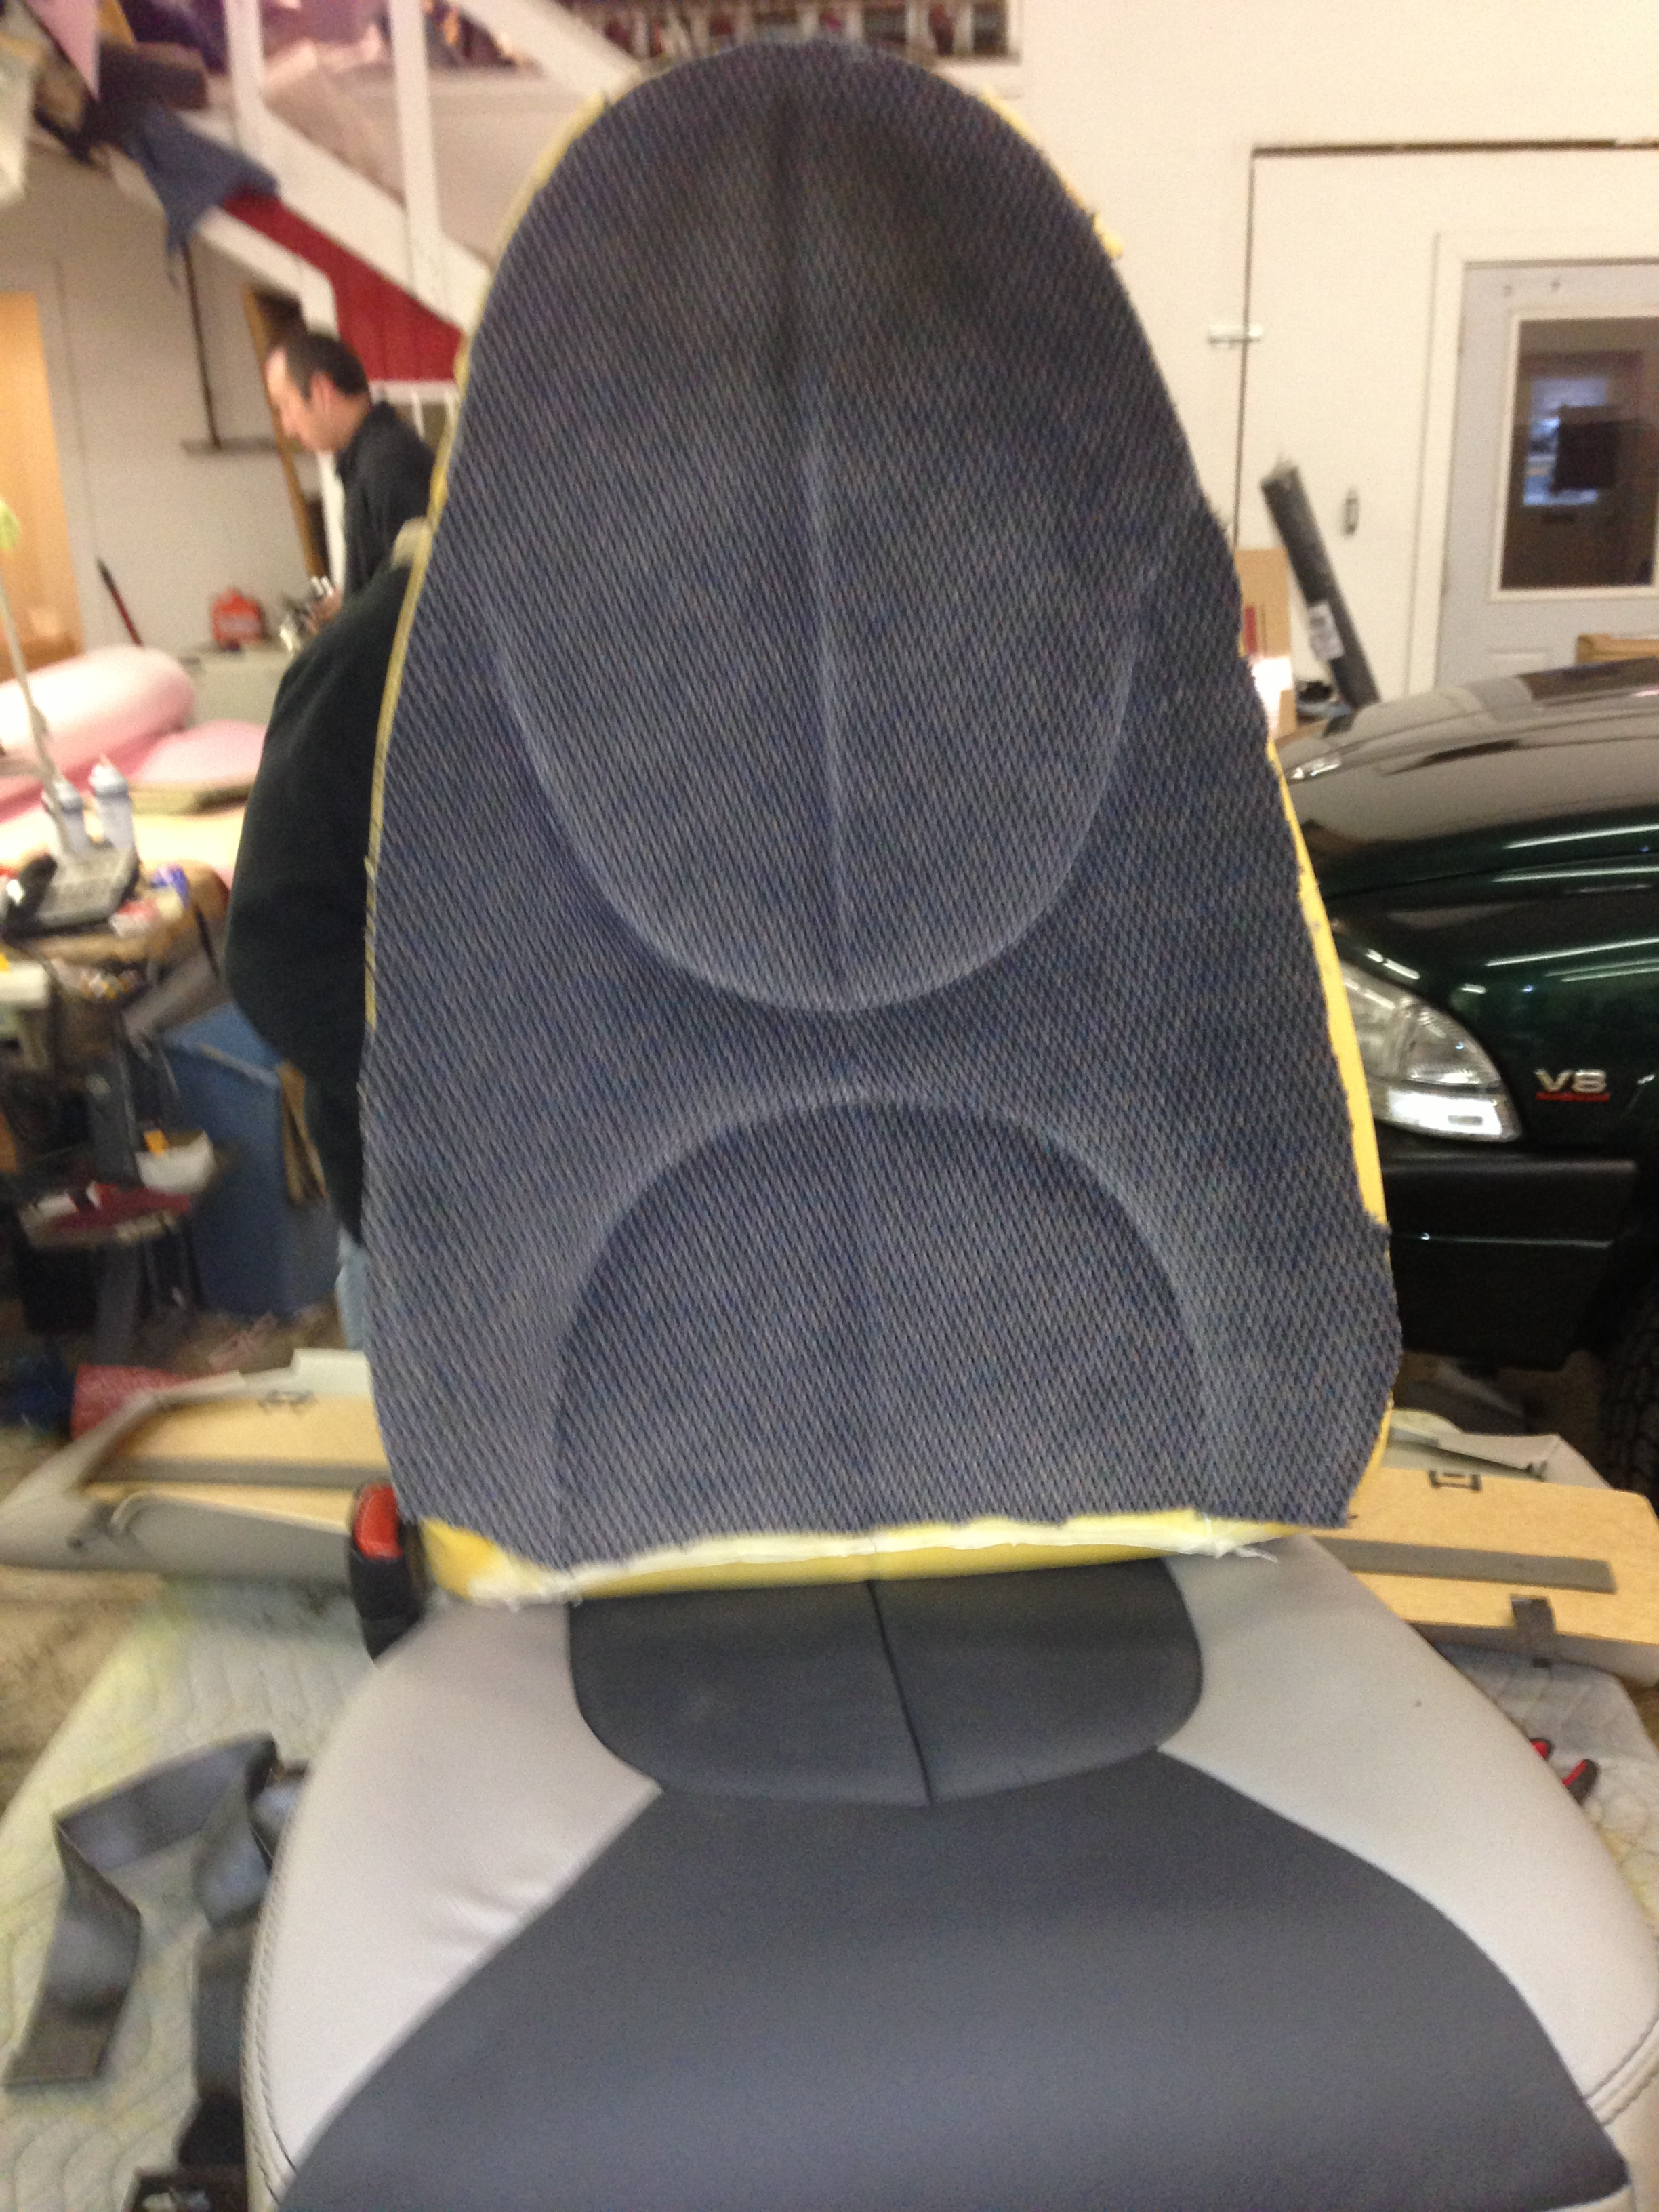 Leather seat During